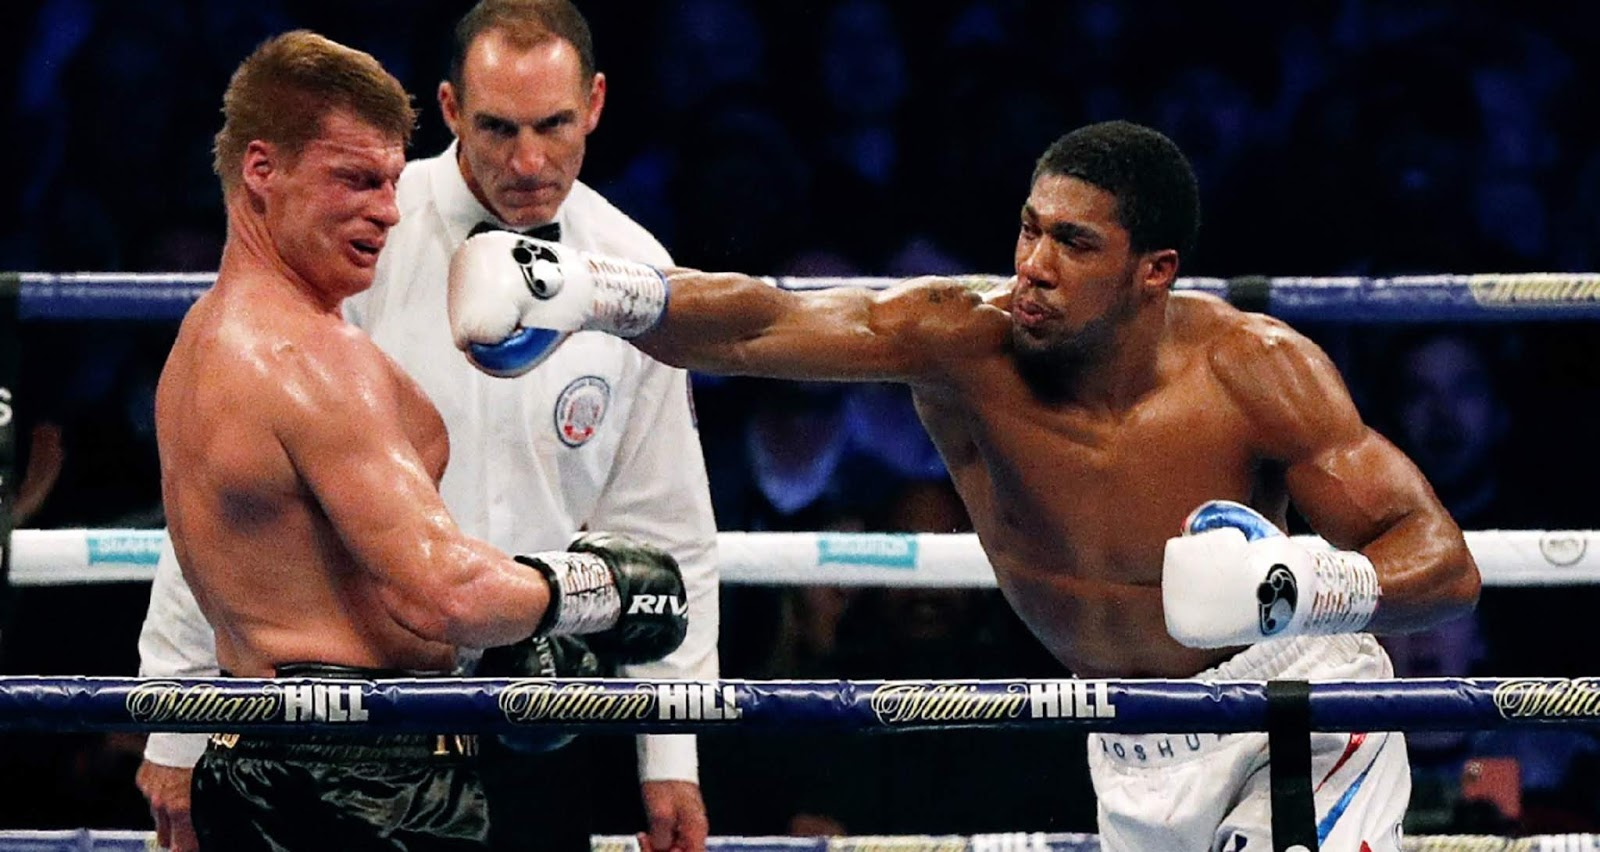 ANTHONY JOSHUA VS. ALEXANDER POVETKIN 2